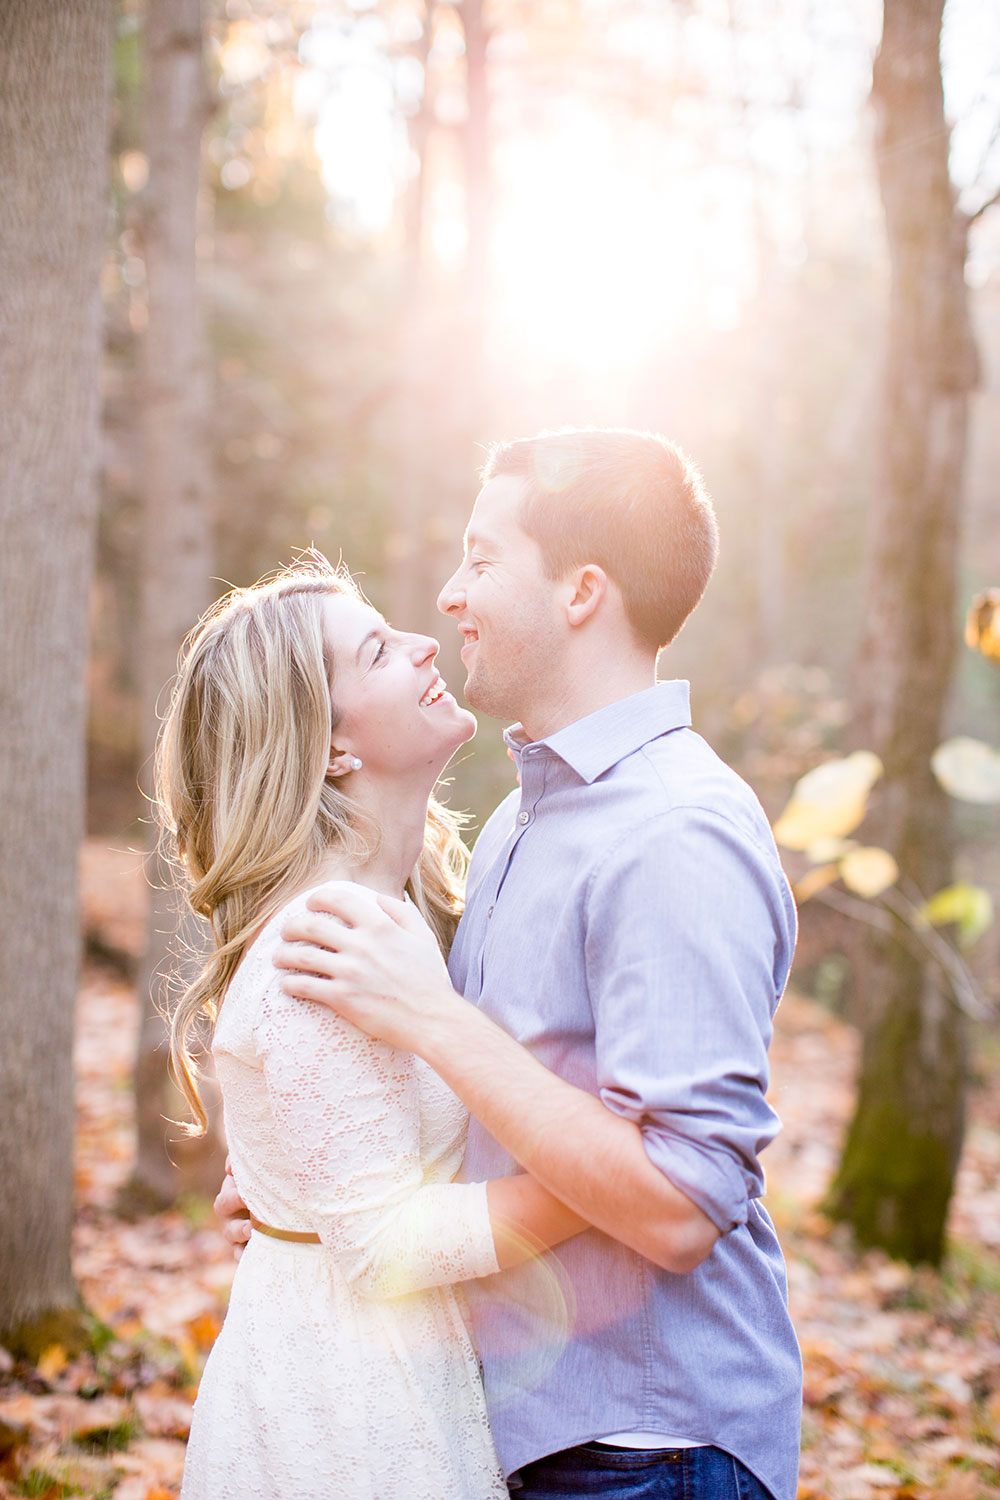 Albion-Hills-Conservation-Park-engagement-session-caledon-photo-by-philosophy-studios-eva-derrick-photography-009.jpg